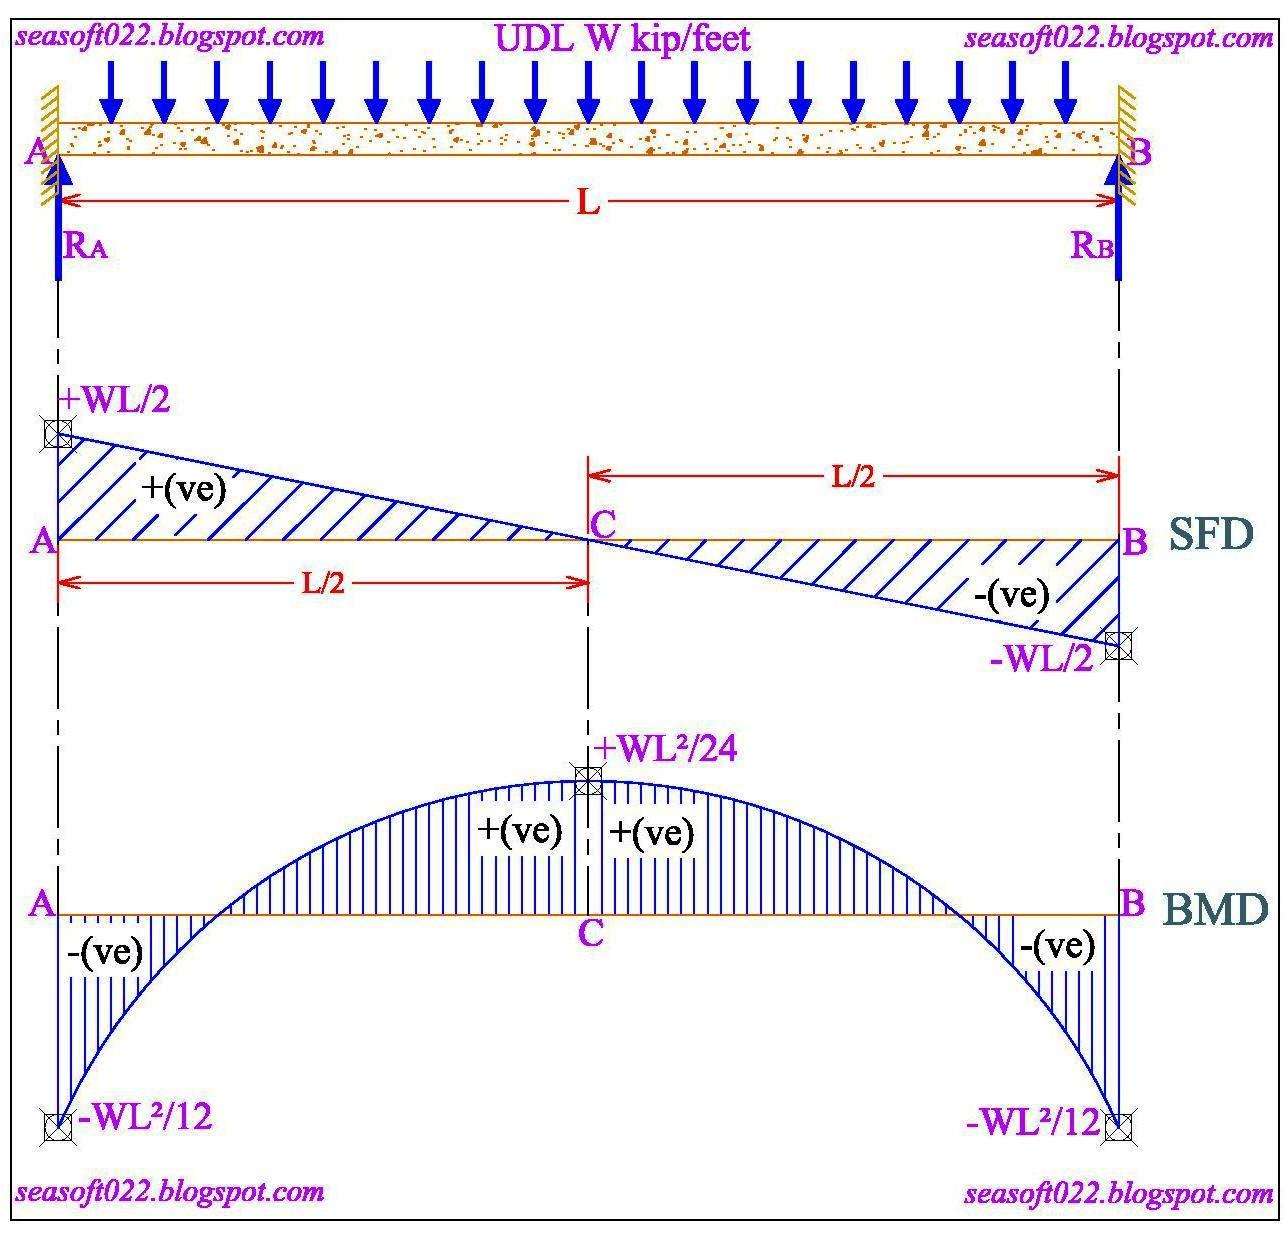 Sea Soft And Design Consultants Shear Force Bending Moment Cantilever Beam Diagram Picture 01